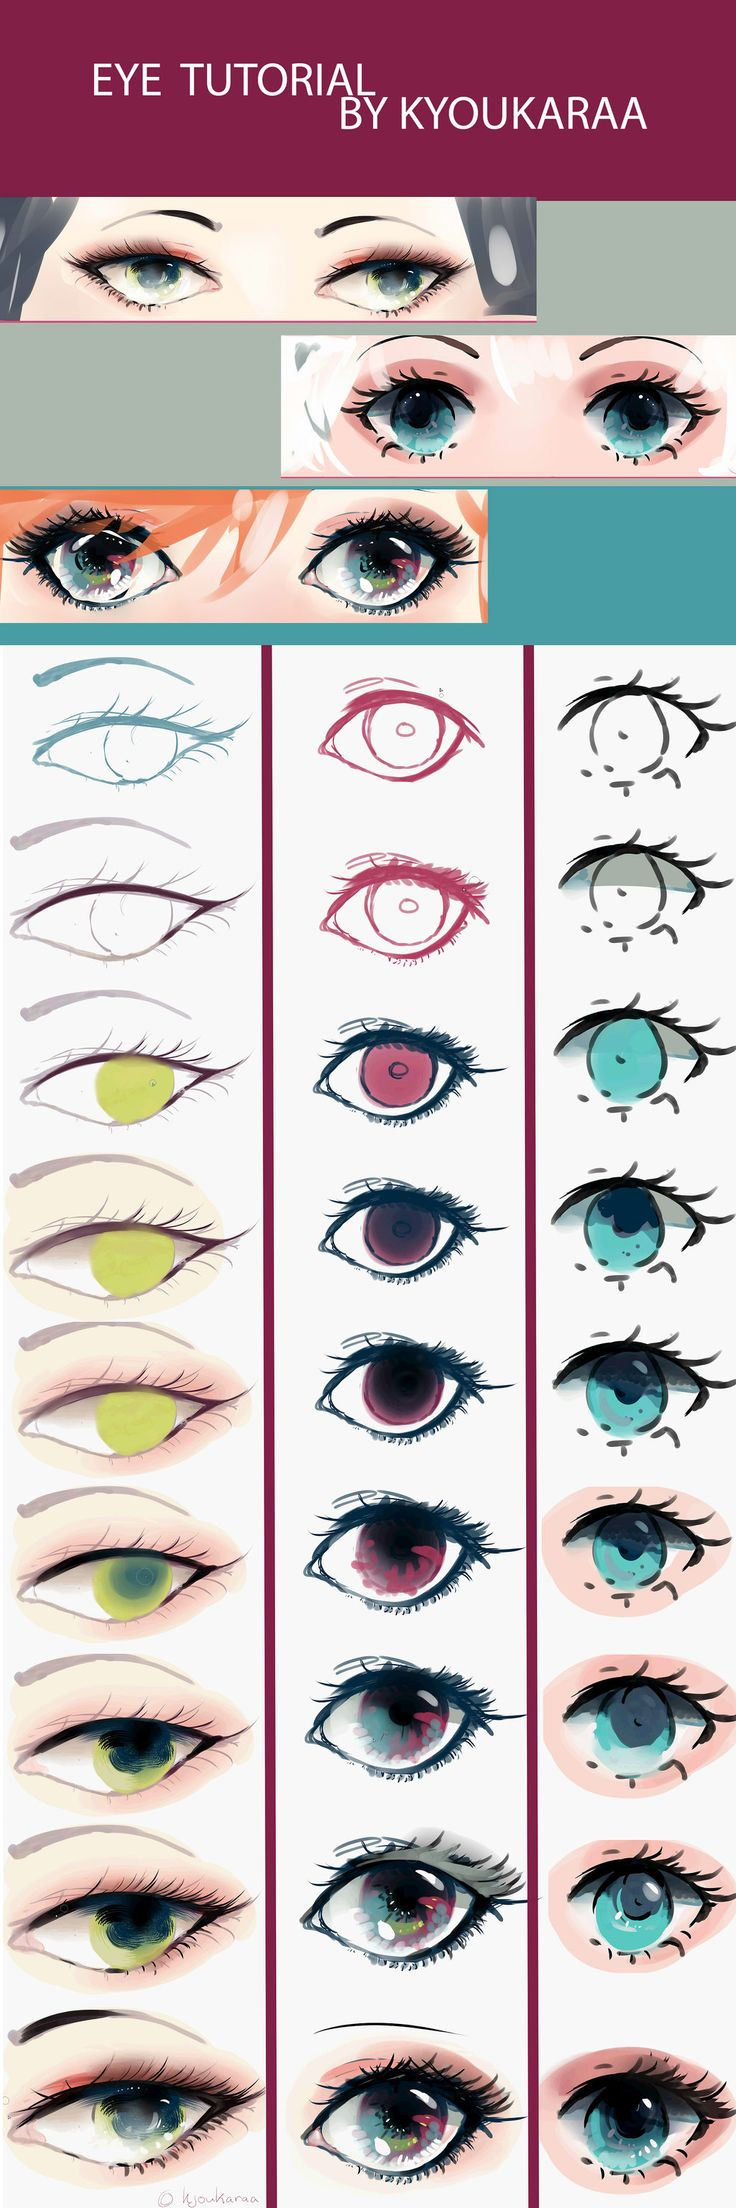 Eye Tutorial (+Video) by KyouKaraa